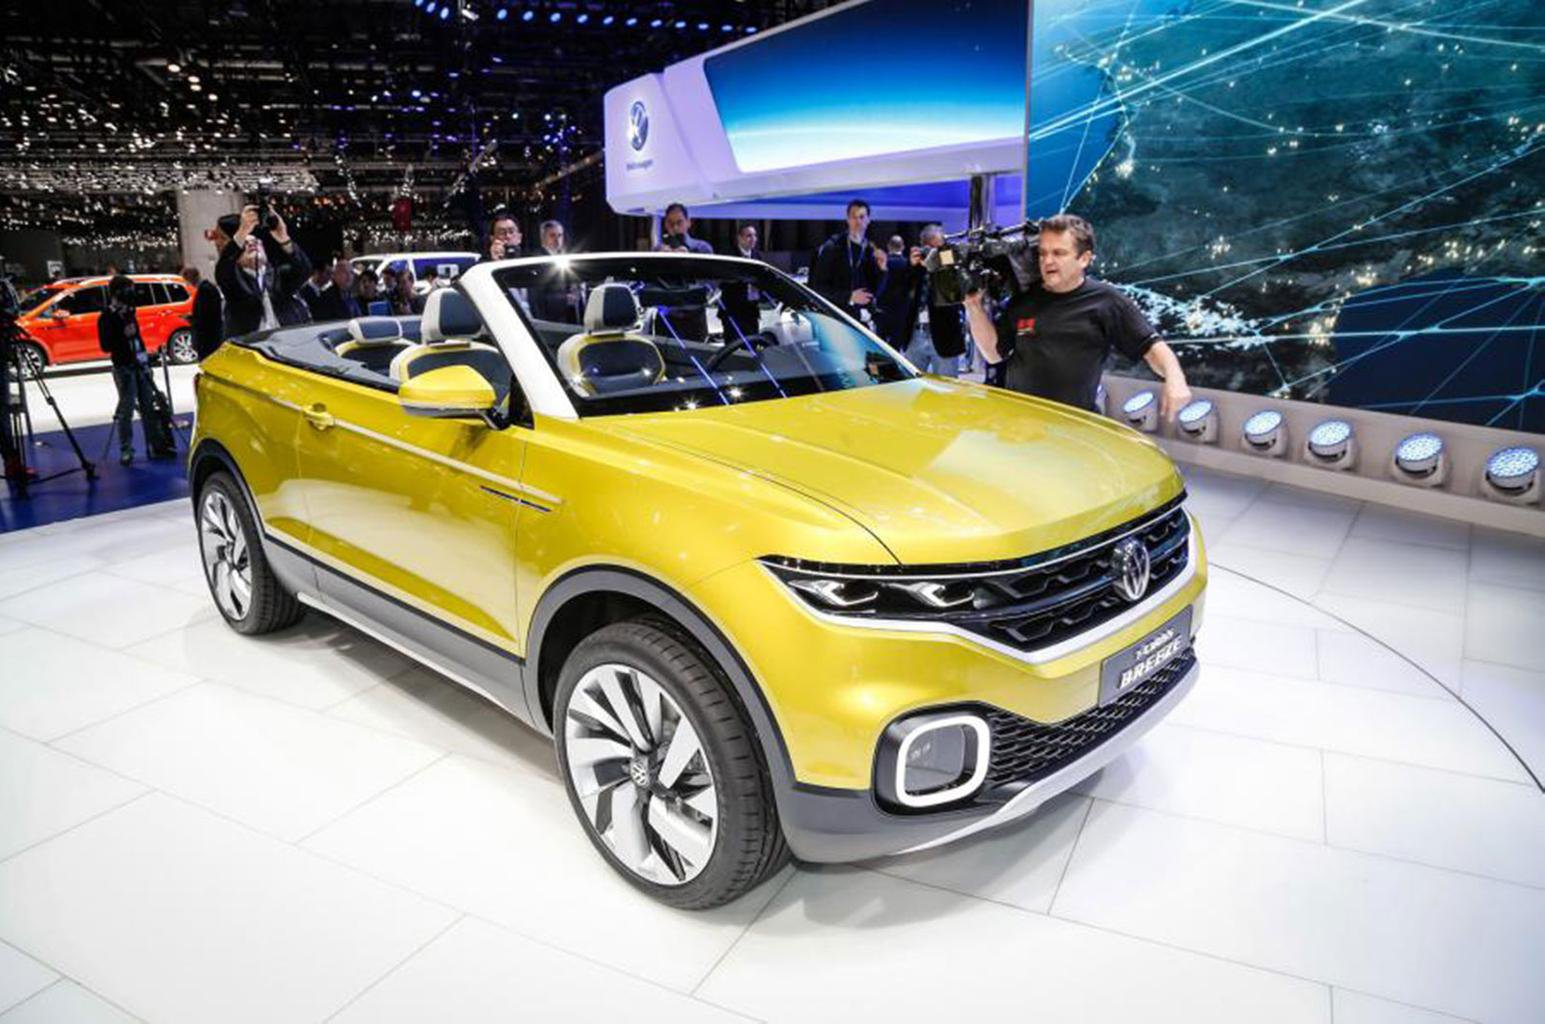 2019 Volkswagen T-Cross – price, specs and release date